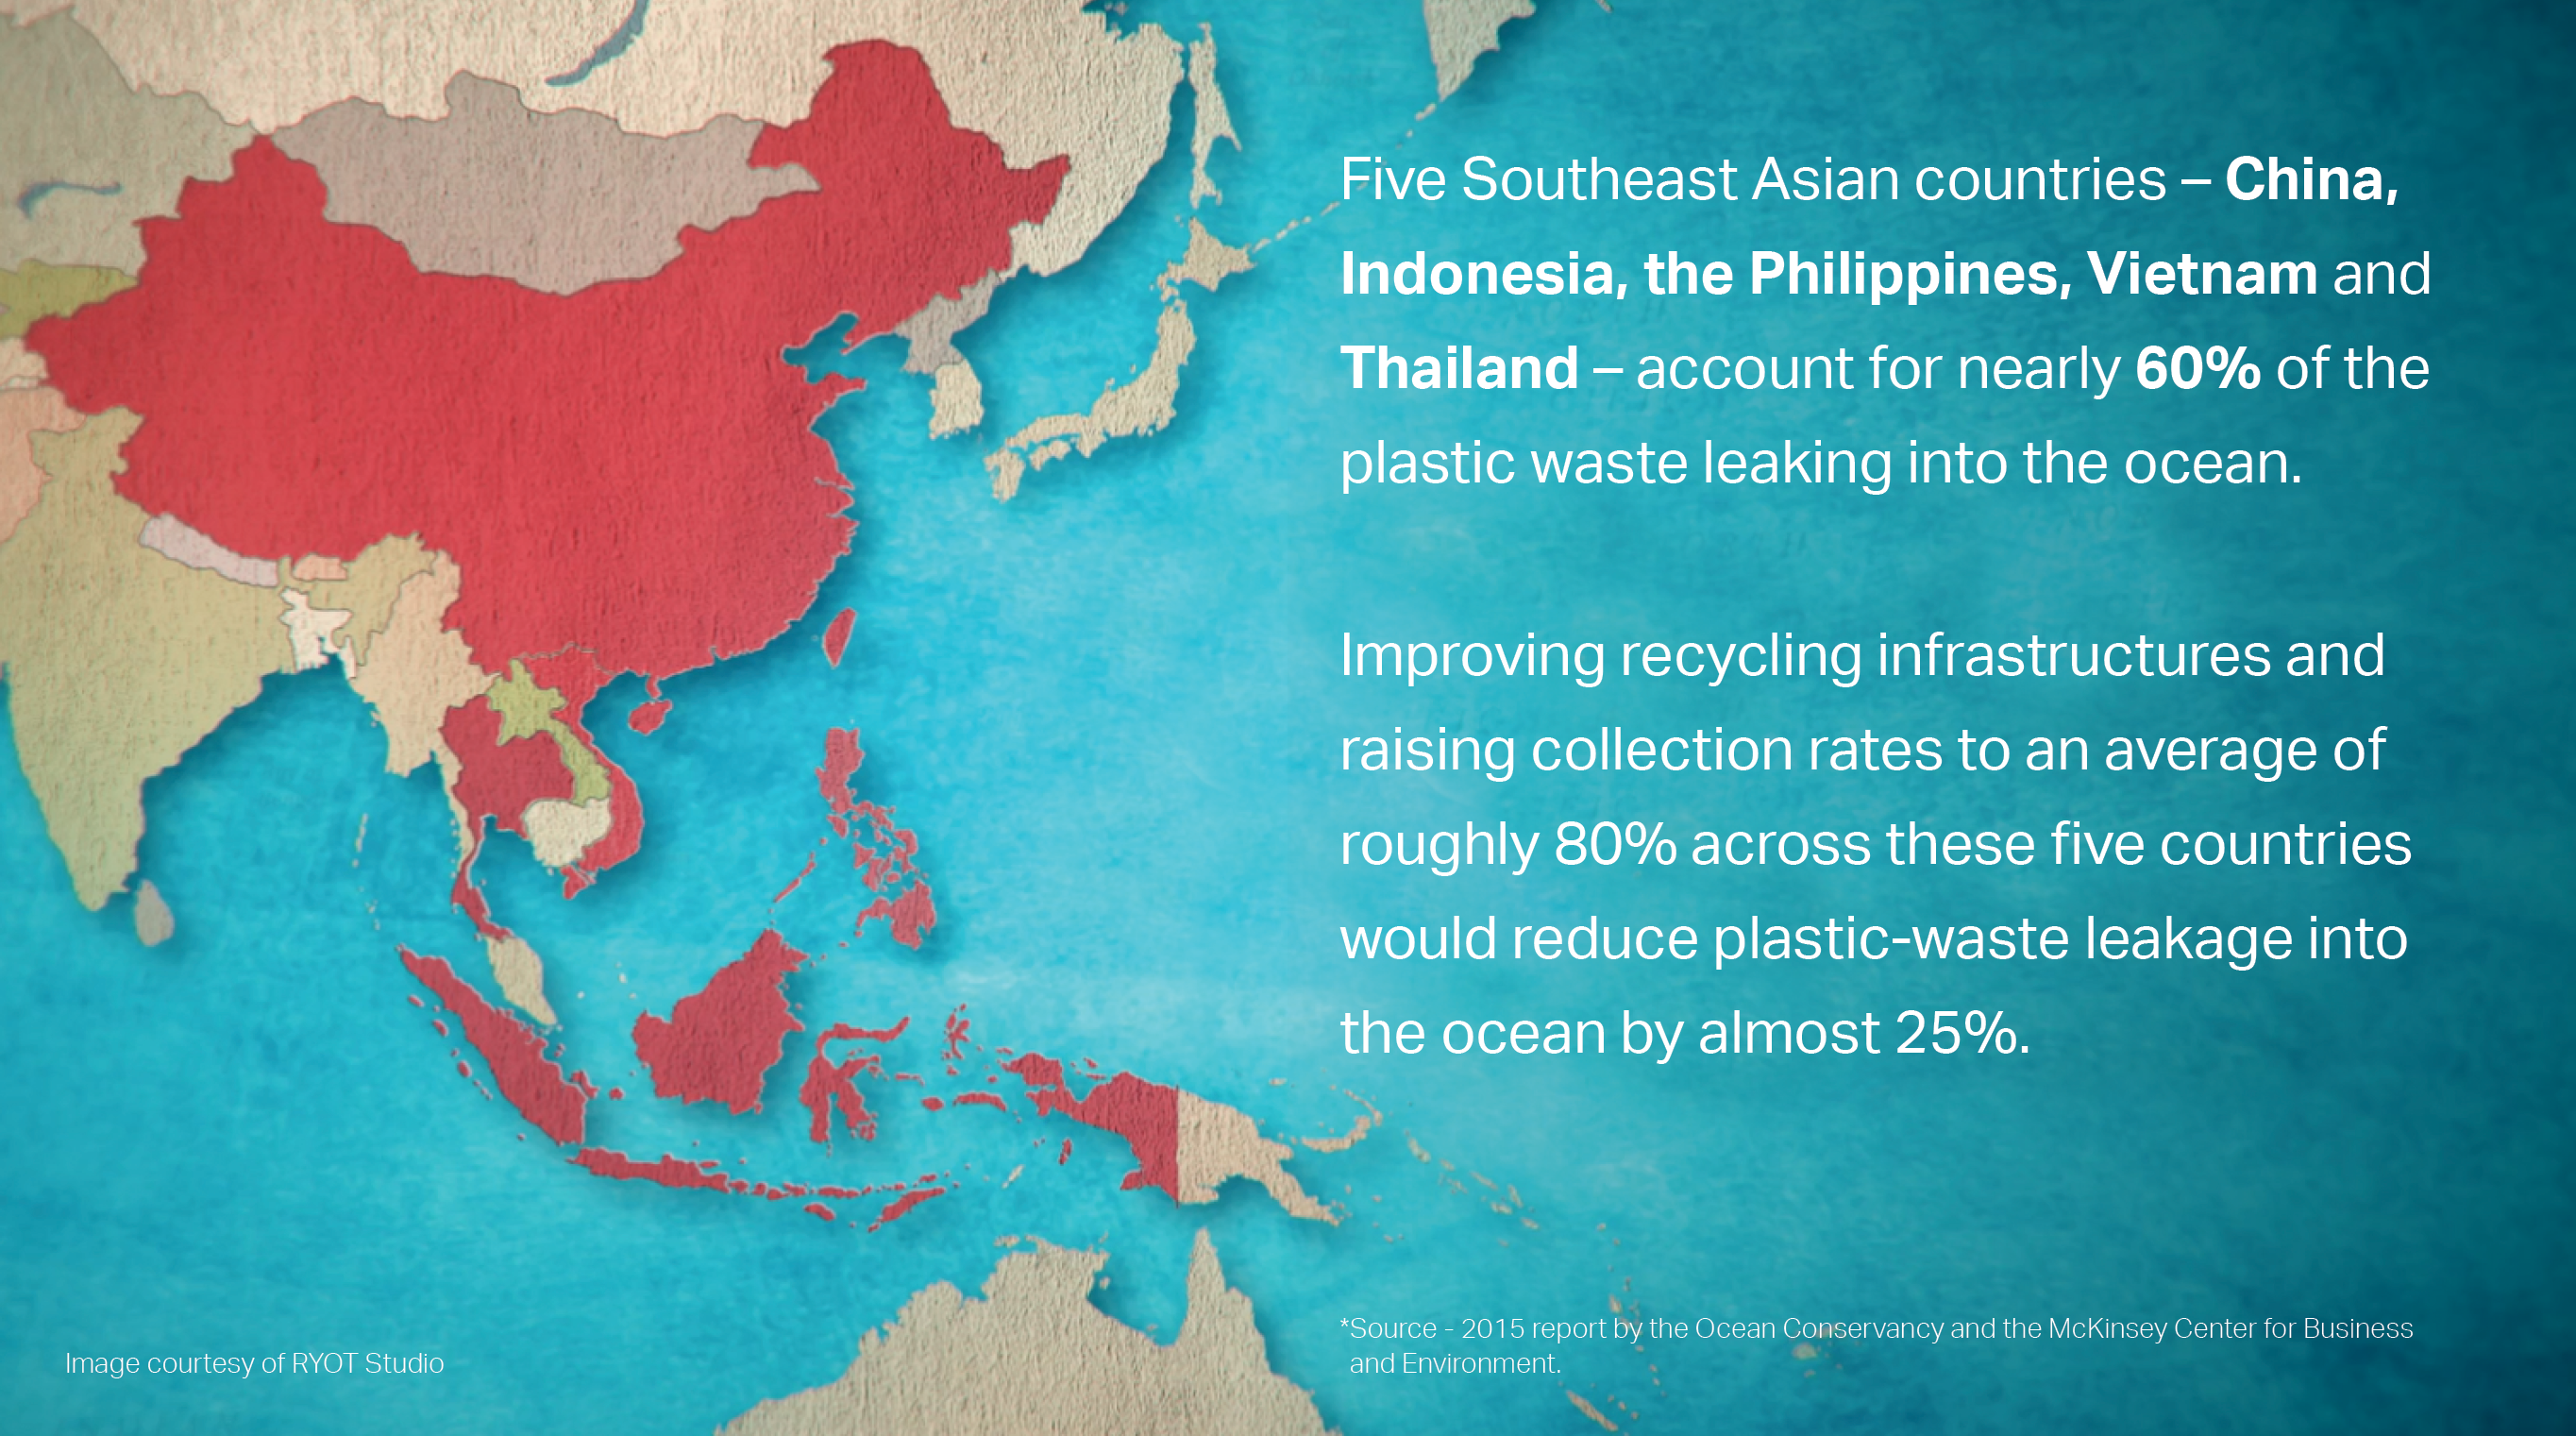 Improving recycling infrastructures is key to keeping plastic out of the ocean.